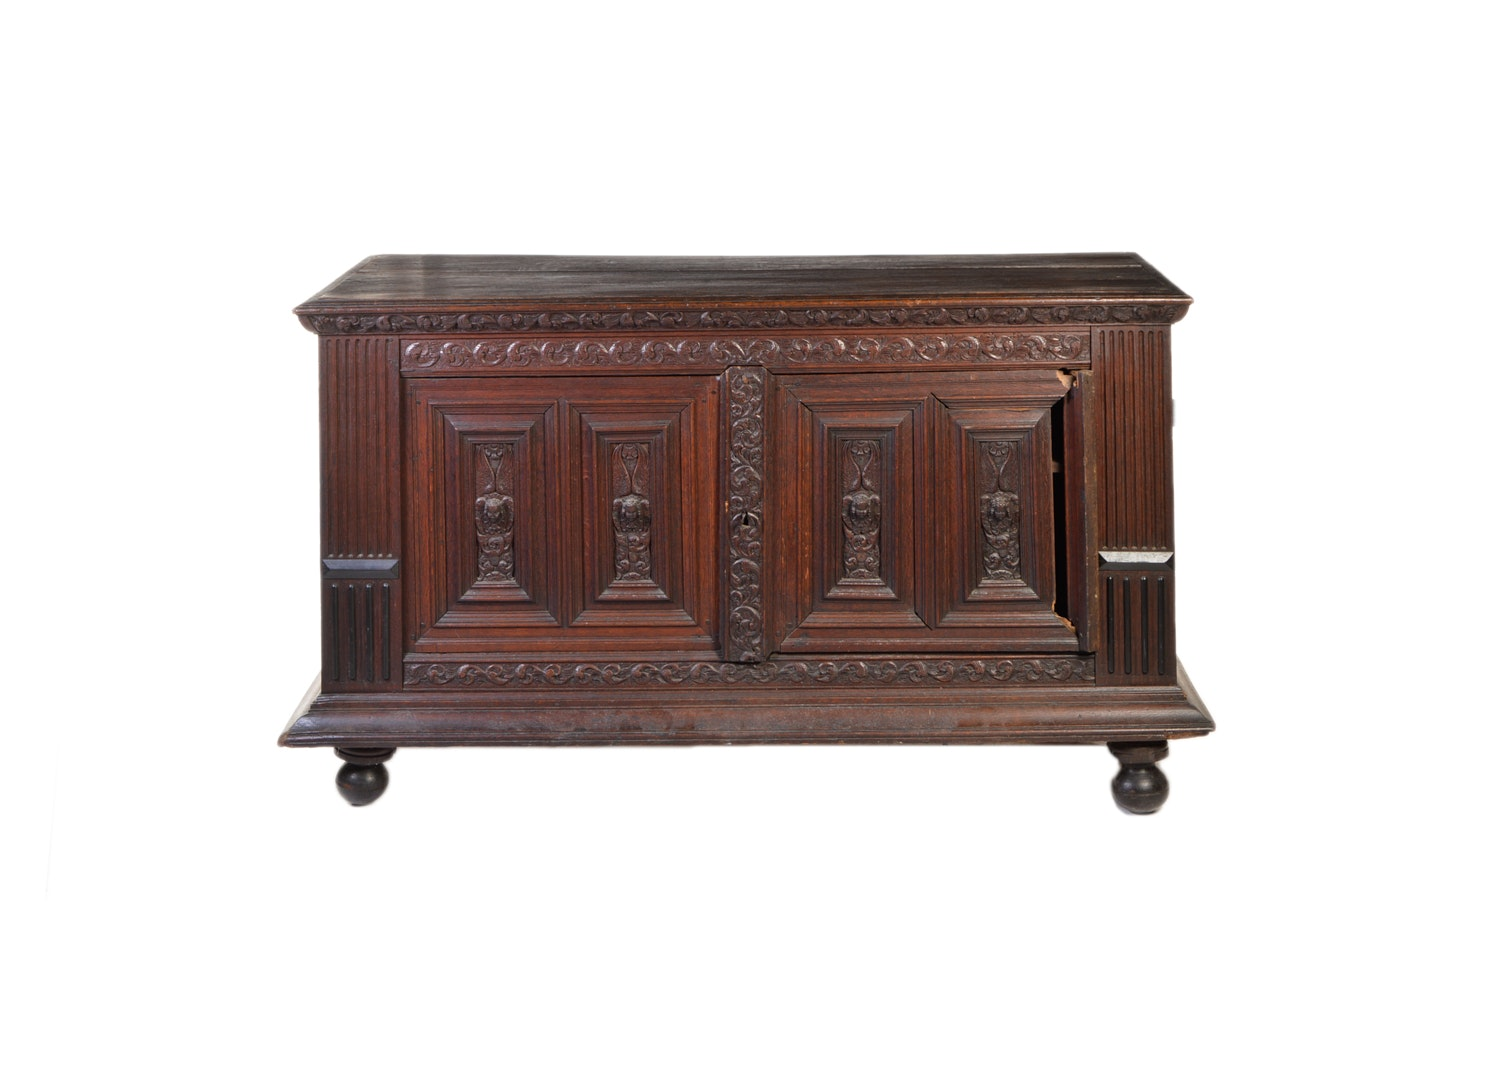 Large English Oak Chest, 18th Century and Adapted